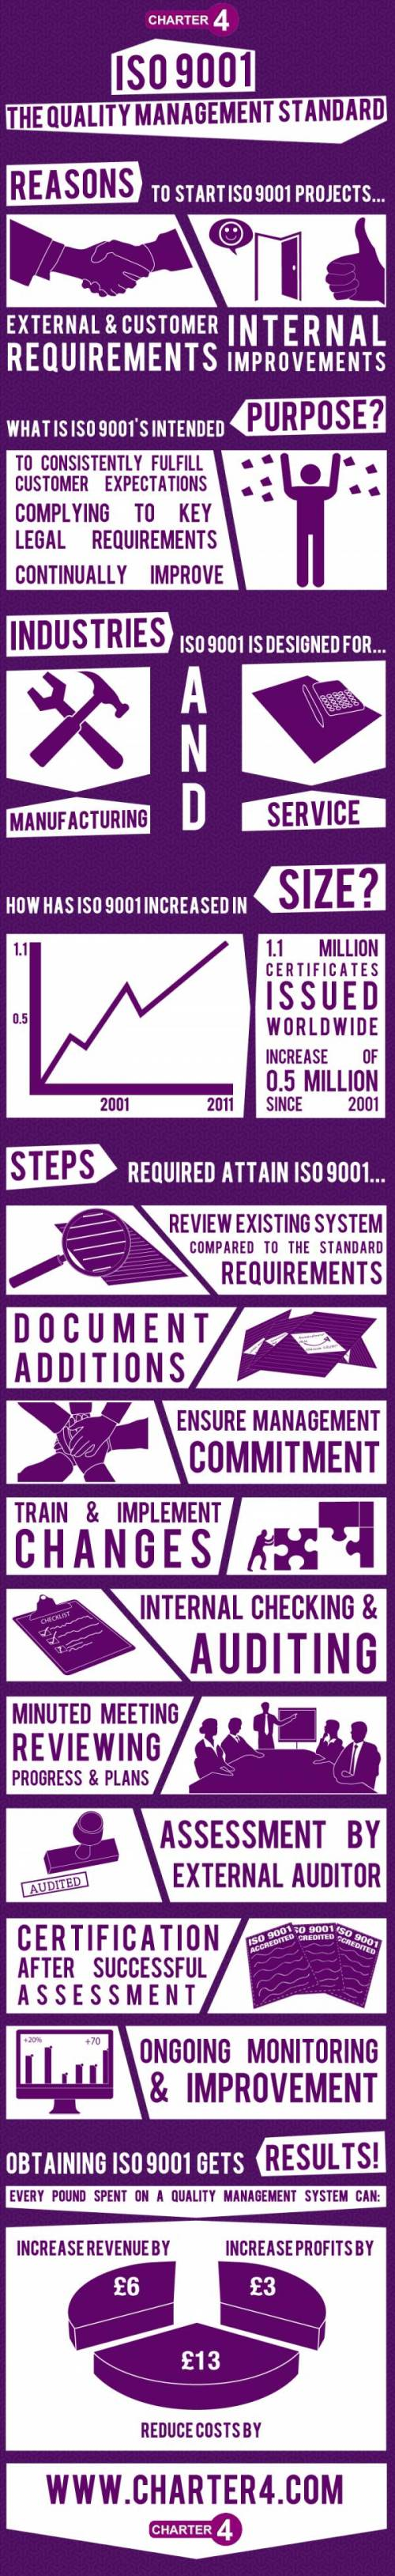 ISO 9001 Infographic